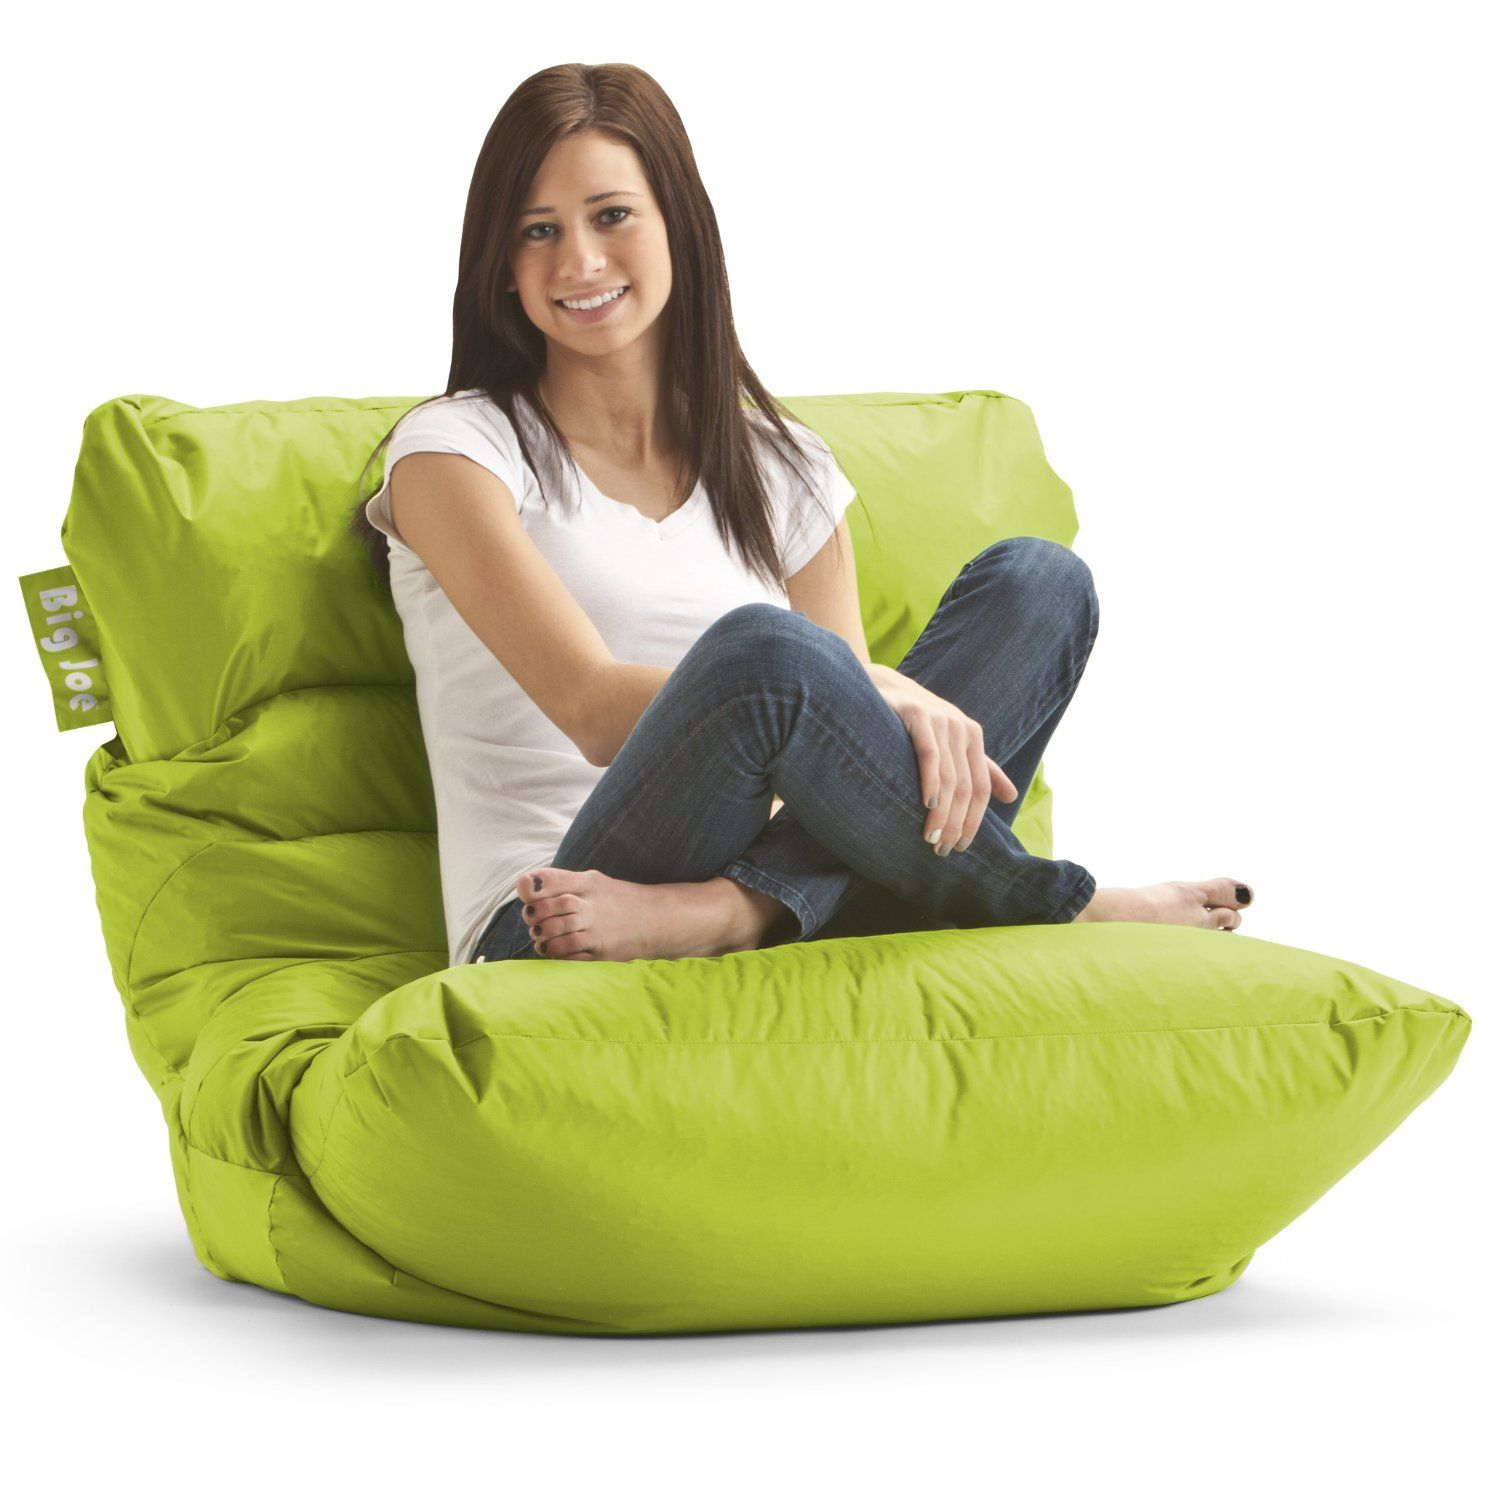 Amazon.com - Big Joe Roma Bean Bag Chair, Spicy Lime ...